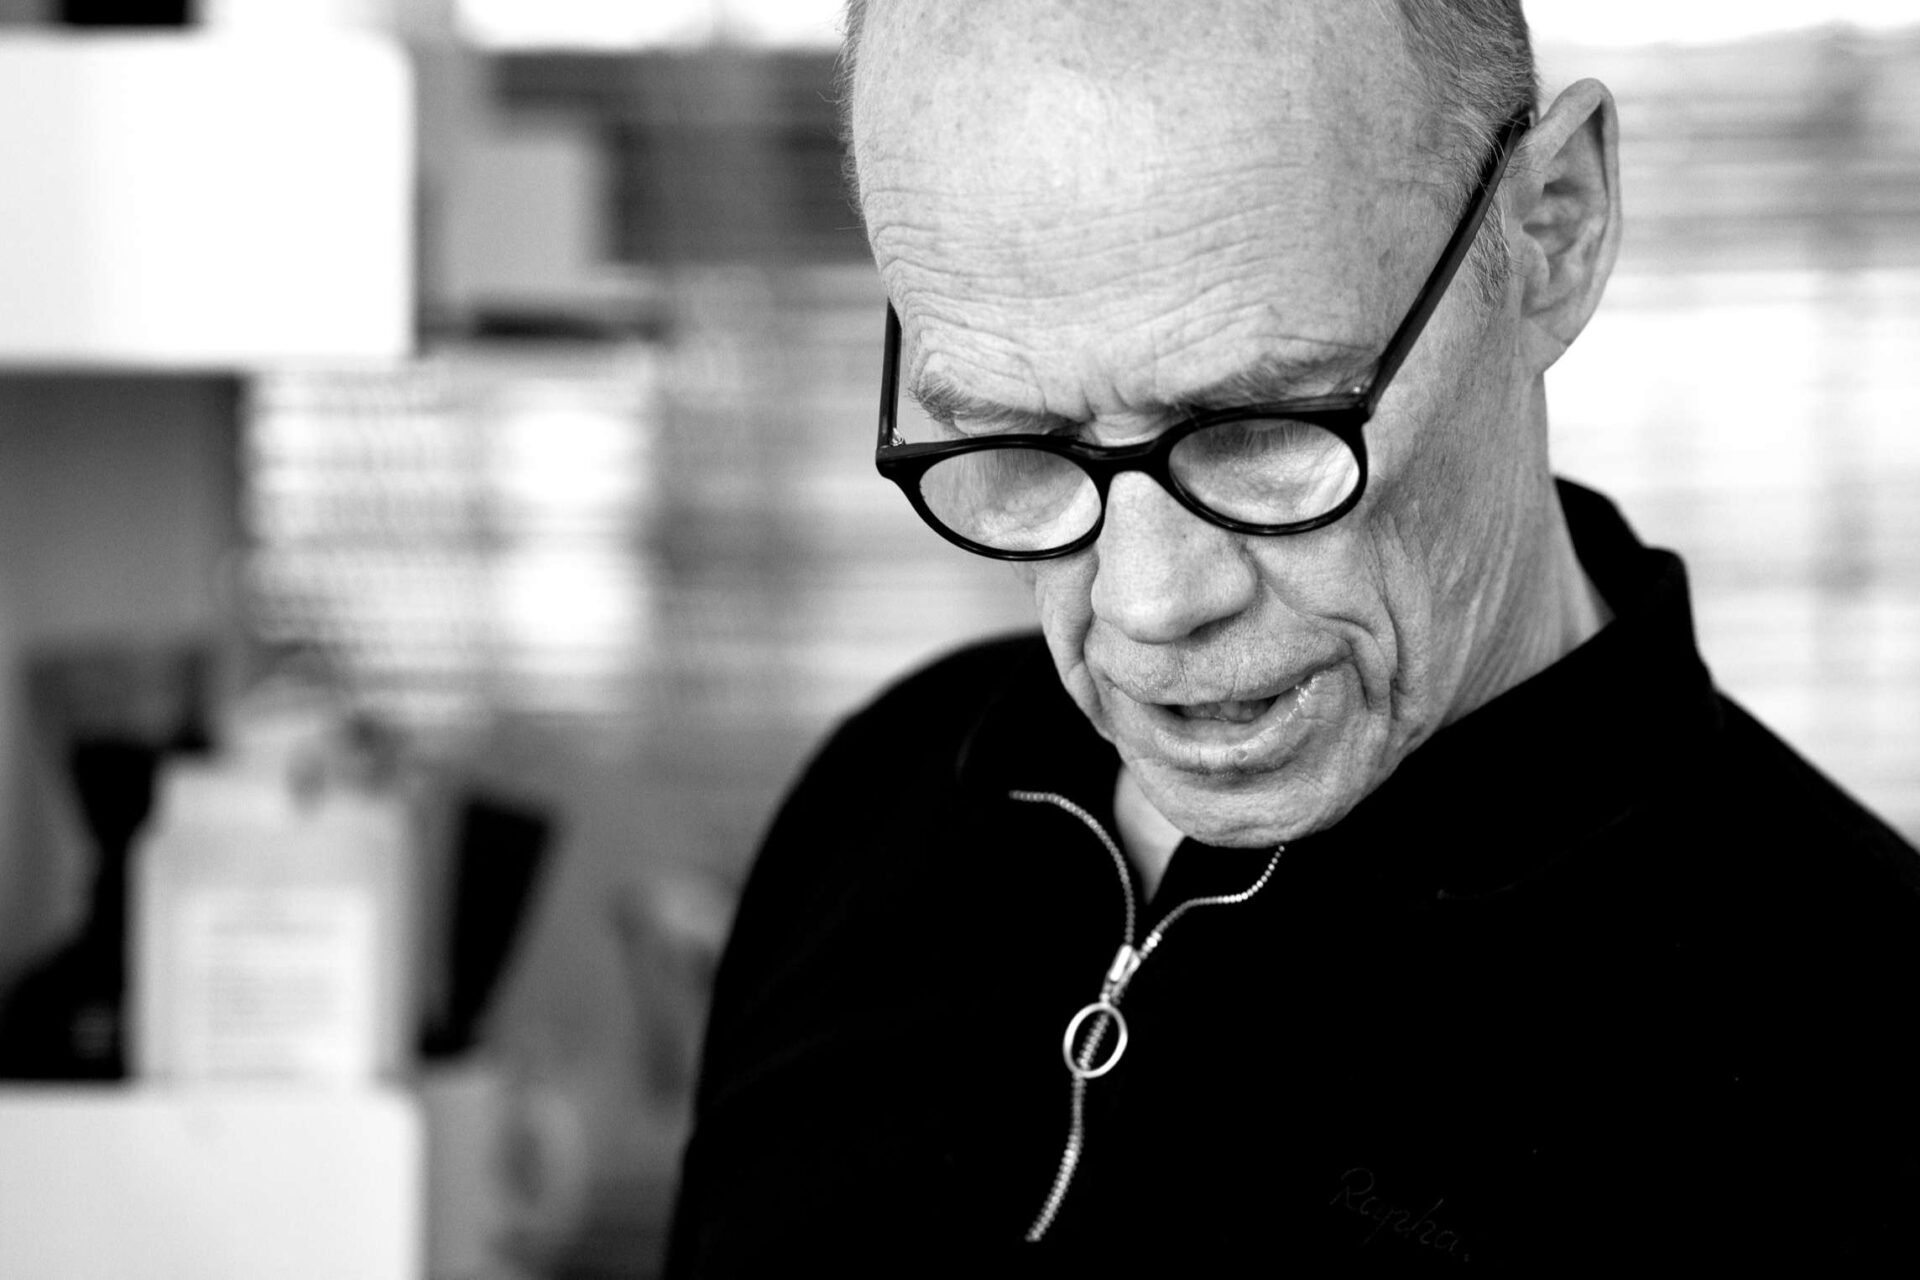 Erik Spiekermann is speaking.